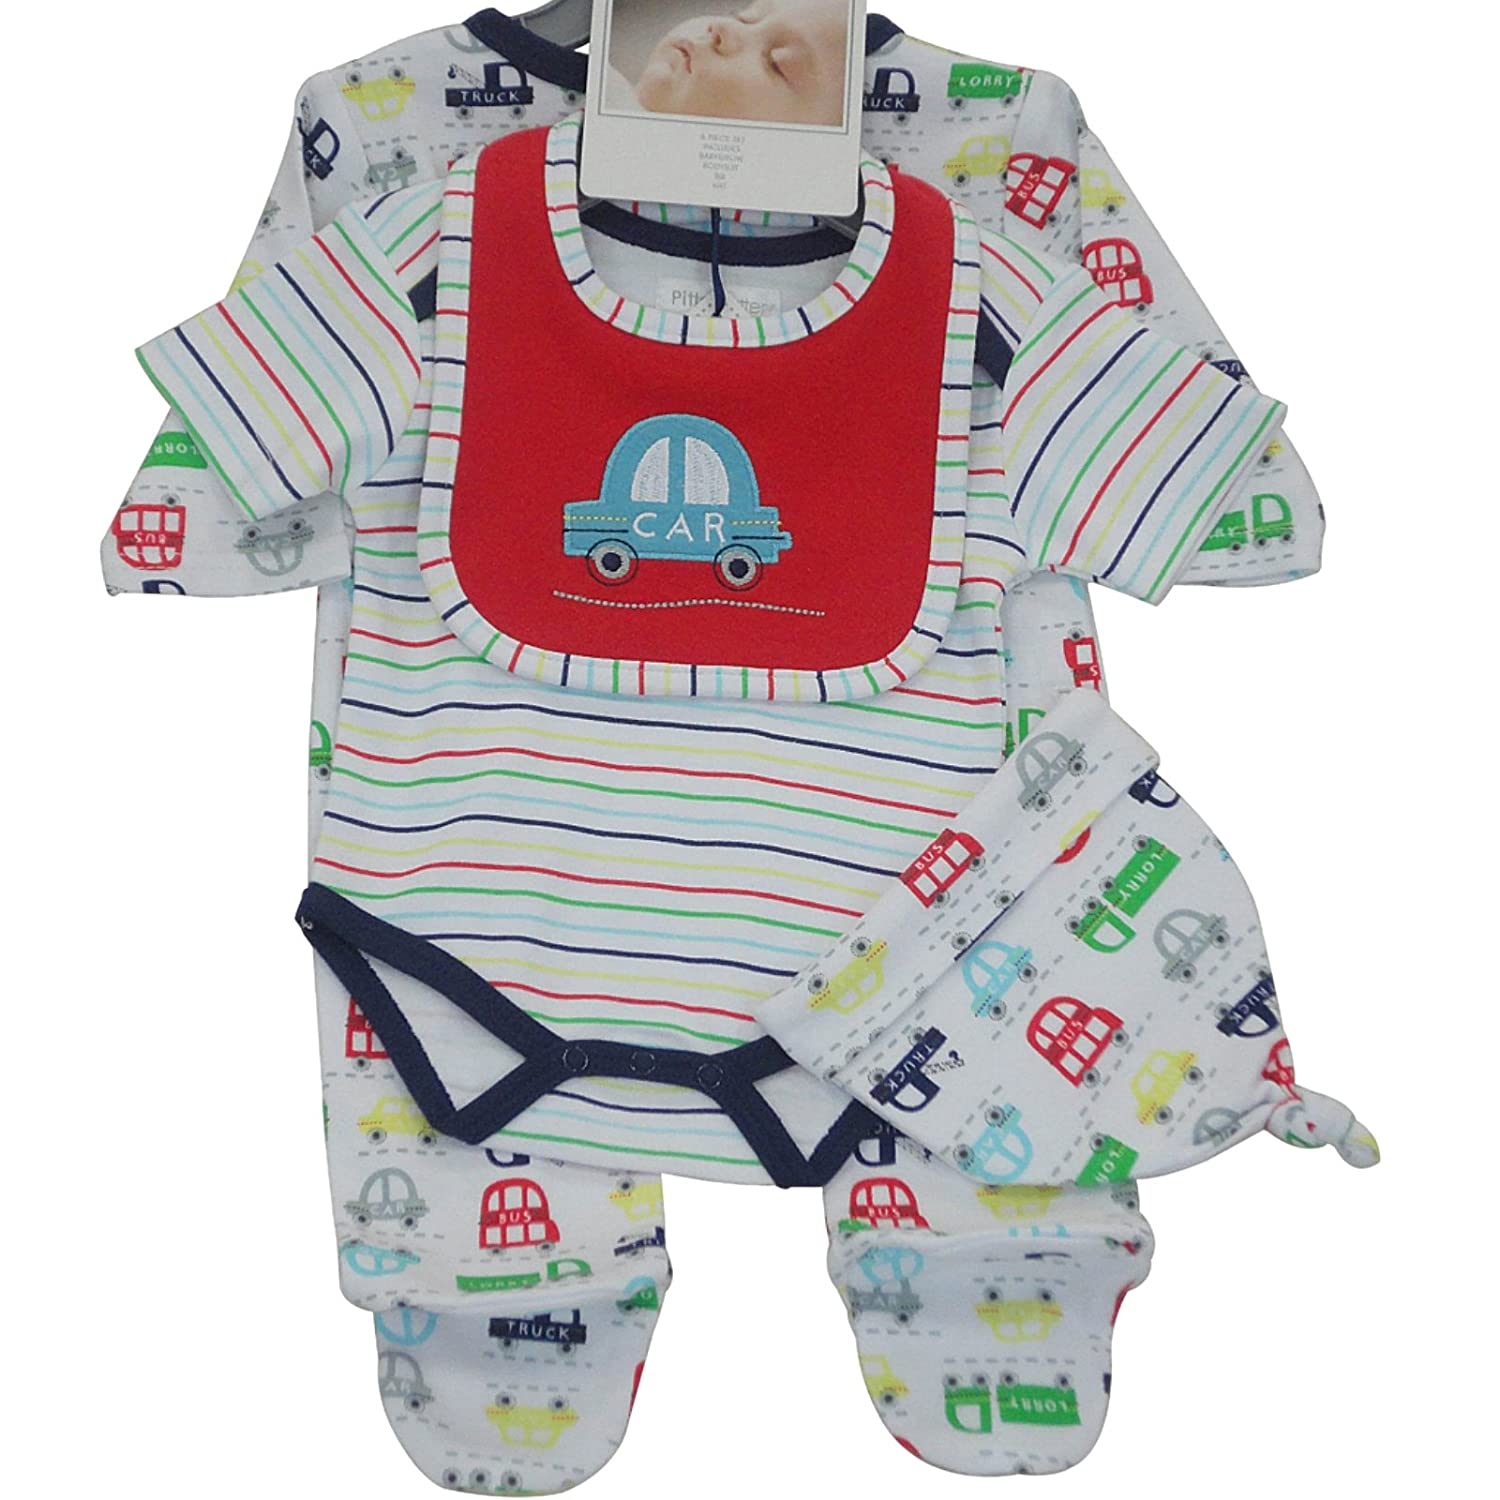 Babies 4 piece set stripe print dino applique/embroidery sleepsuit with hat and bib (3-6 month) PitterPatter